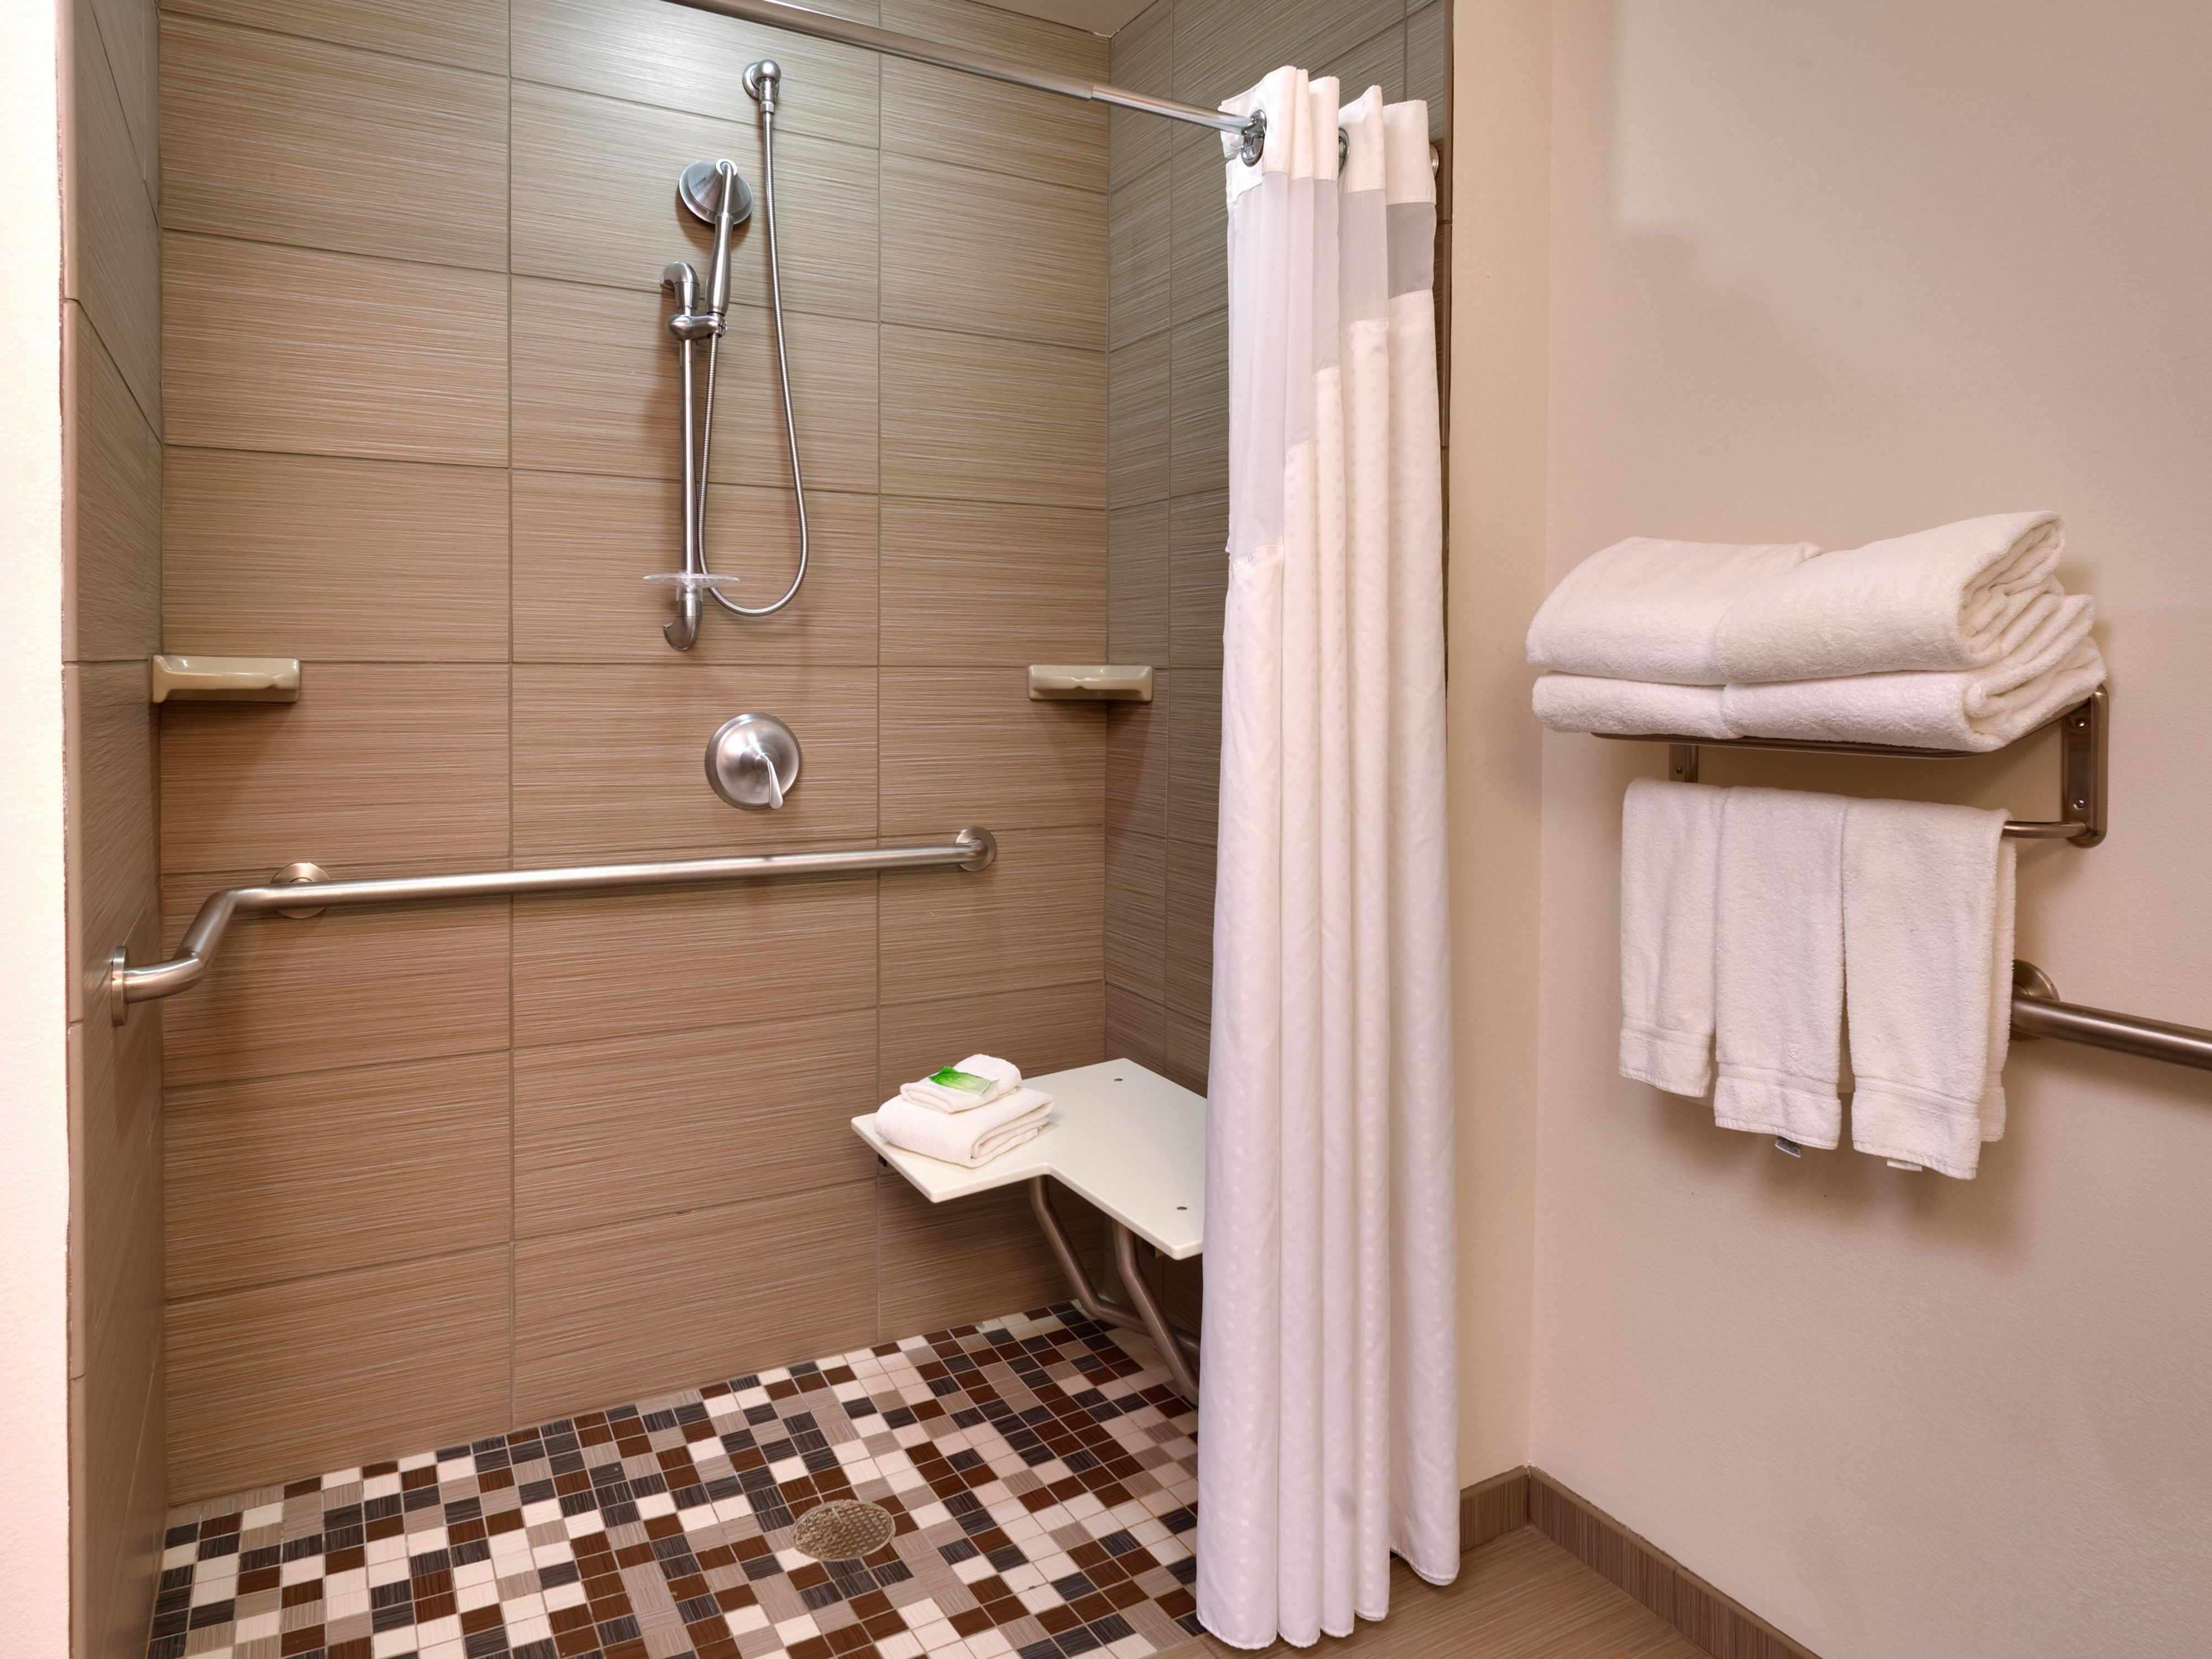 Roll in Shower - Holiday Inn Express & Suites, Overland Park, KS